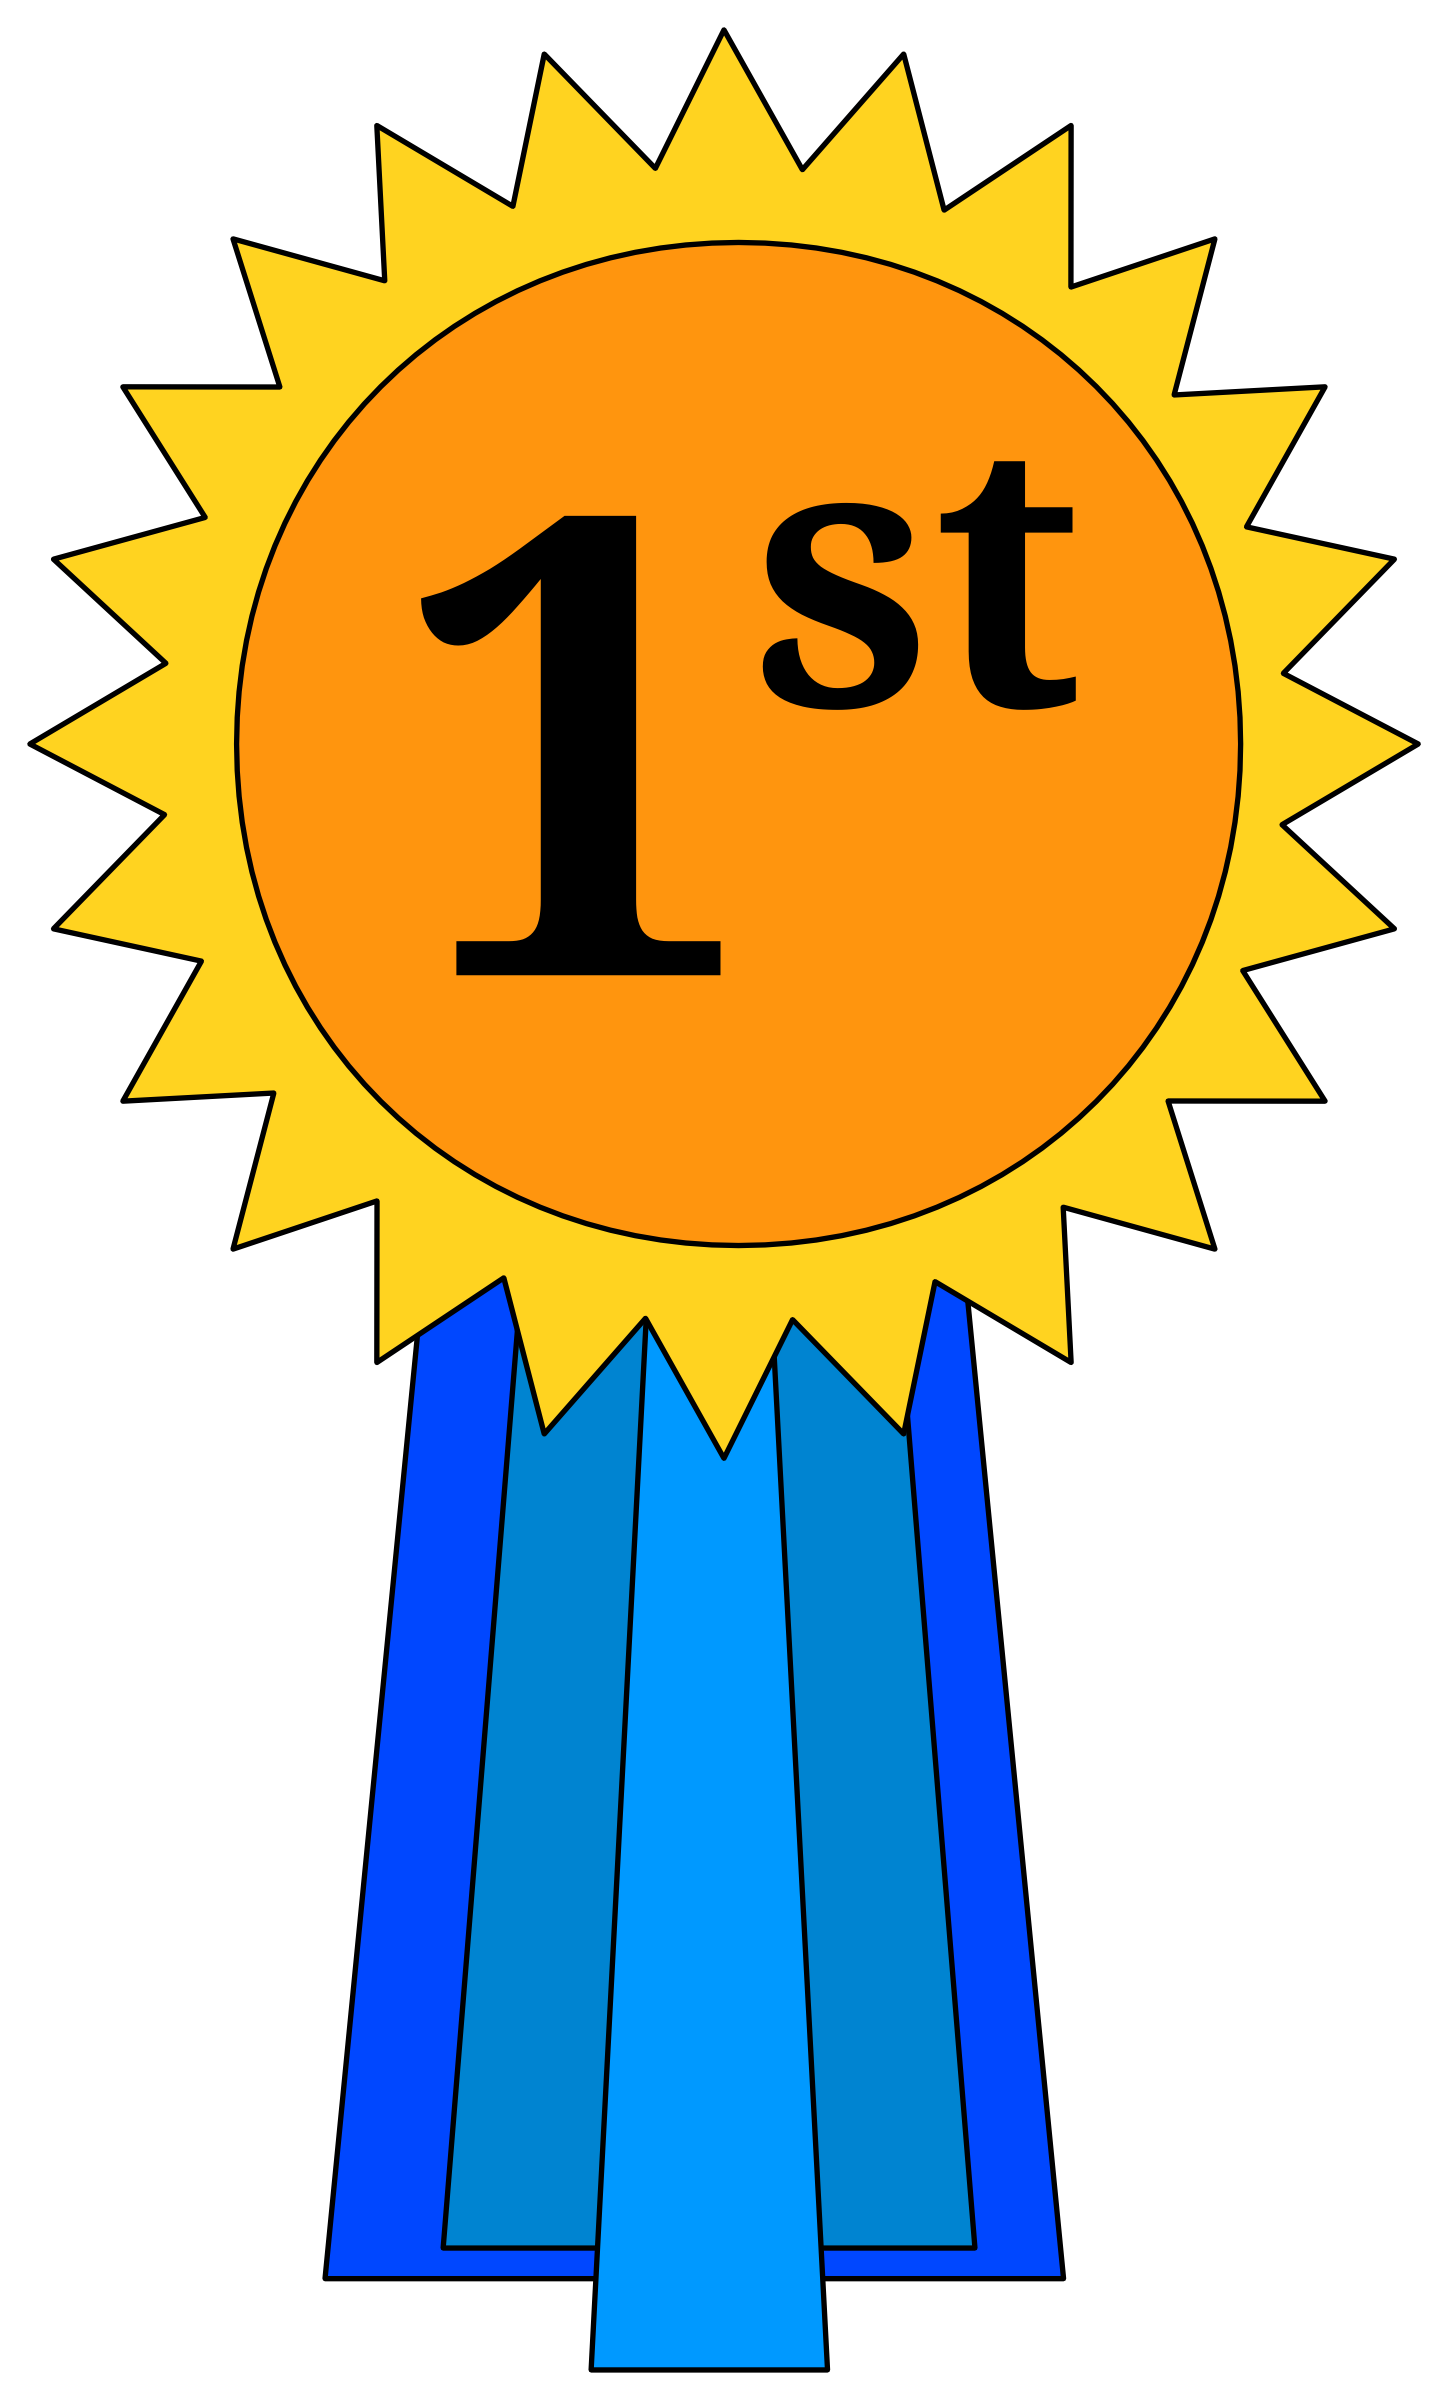 Place clipart on image clip freeuse stock 1st Place Award Ribbon Clipart Placepng free image clip freeuse stock